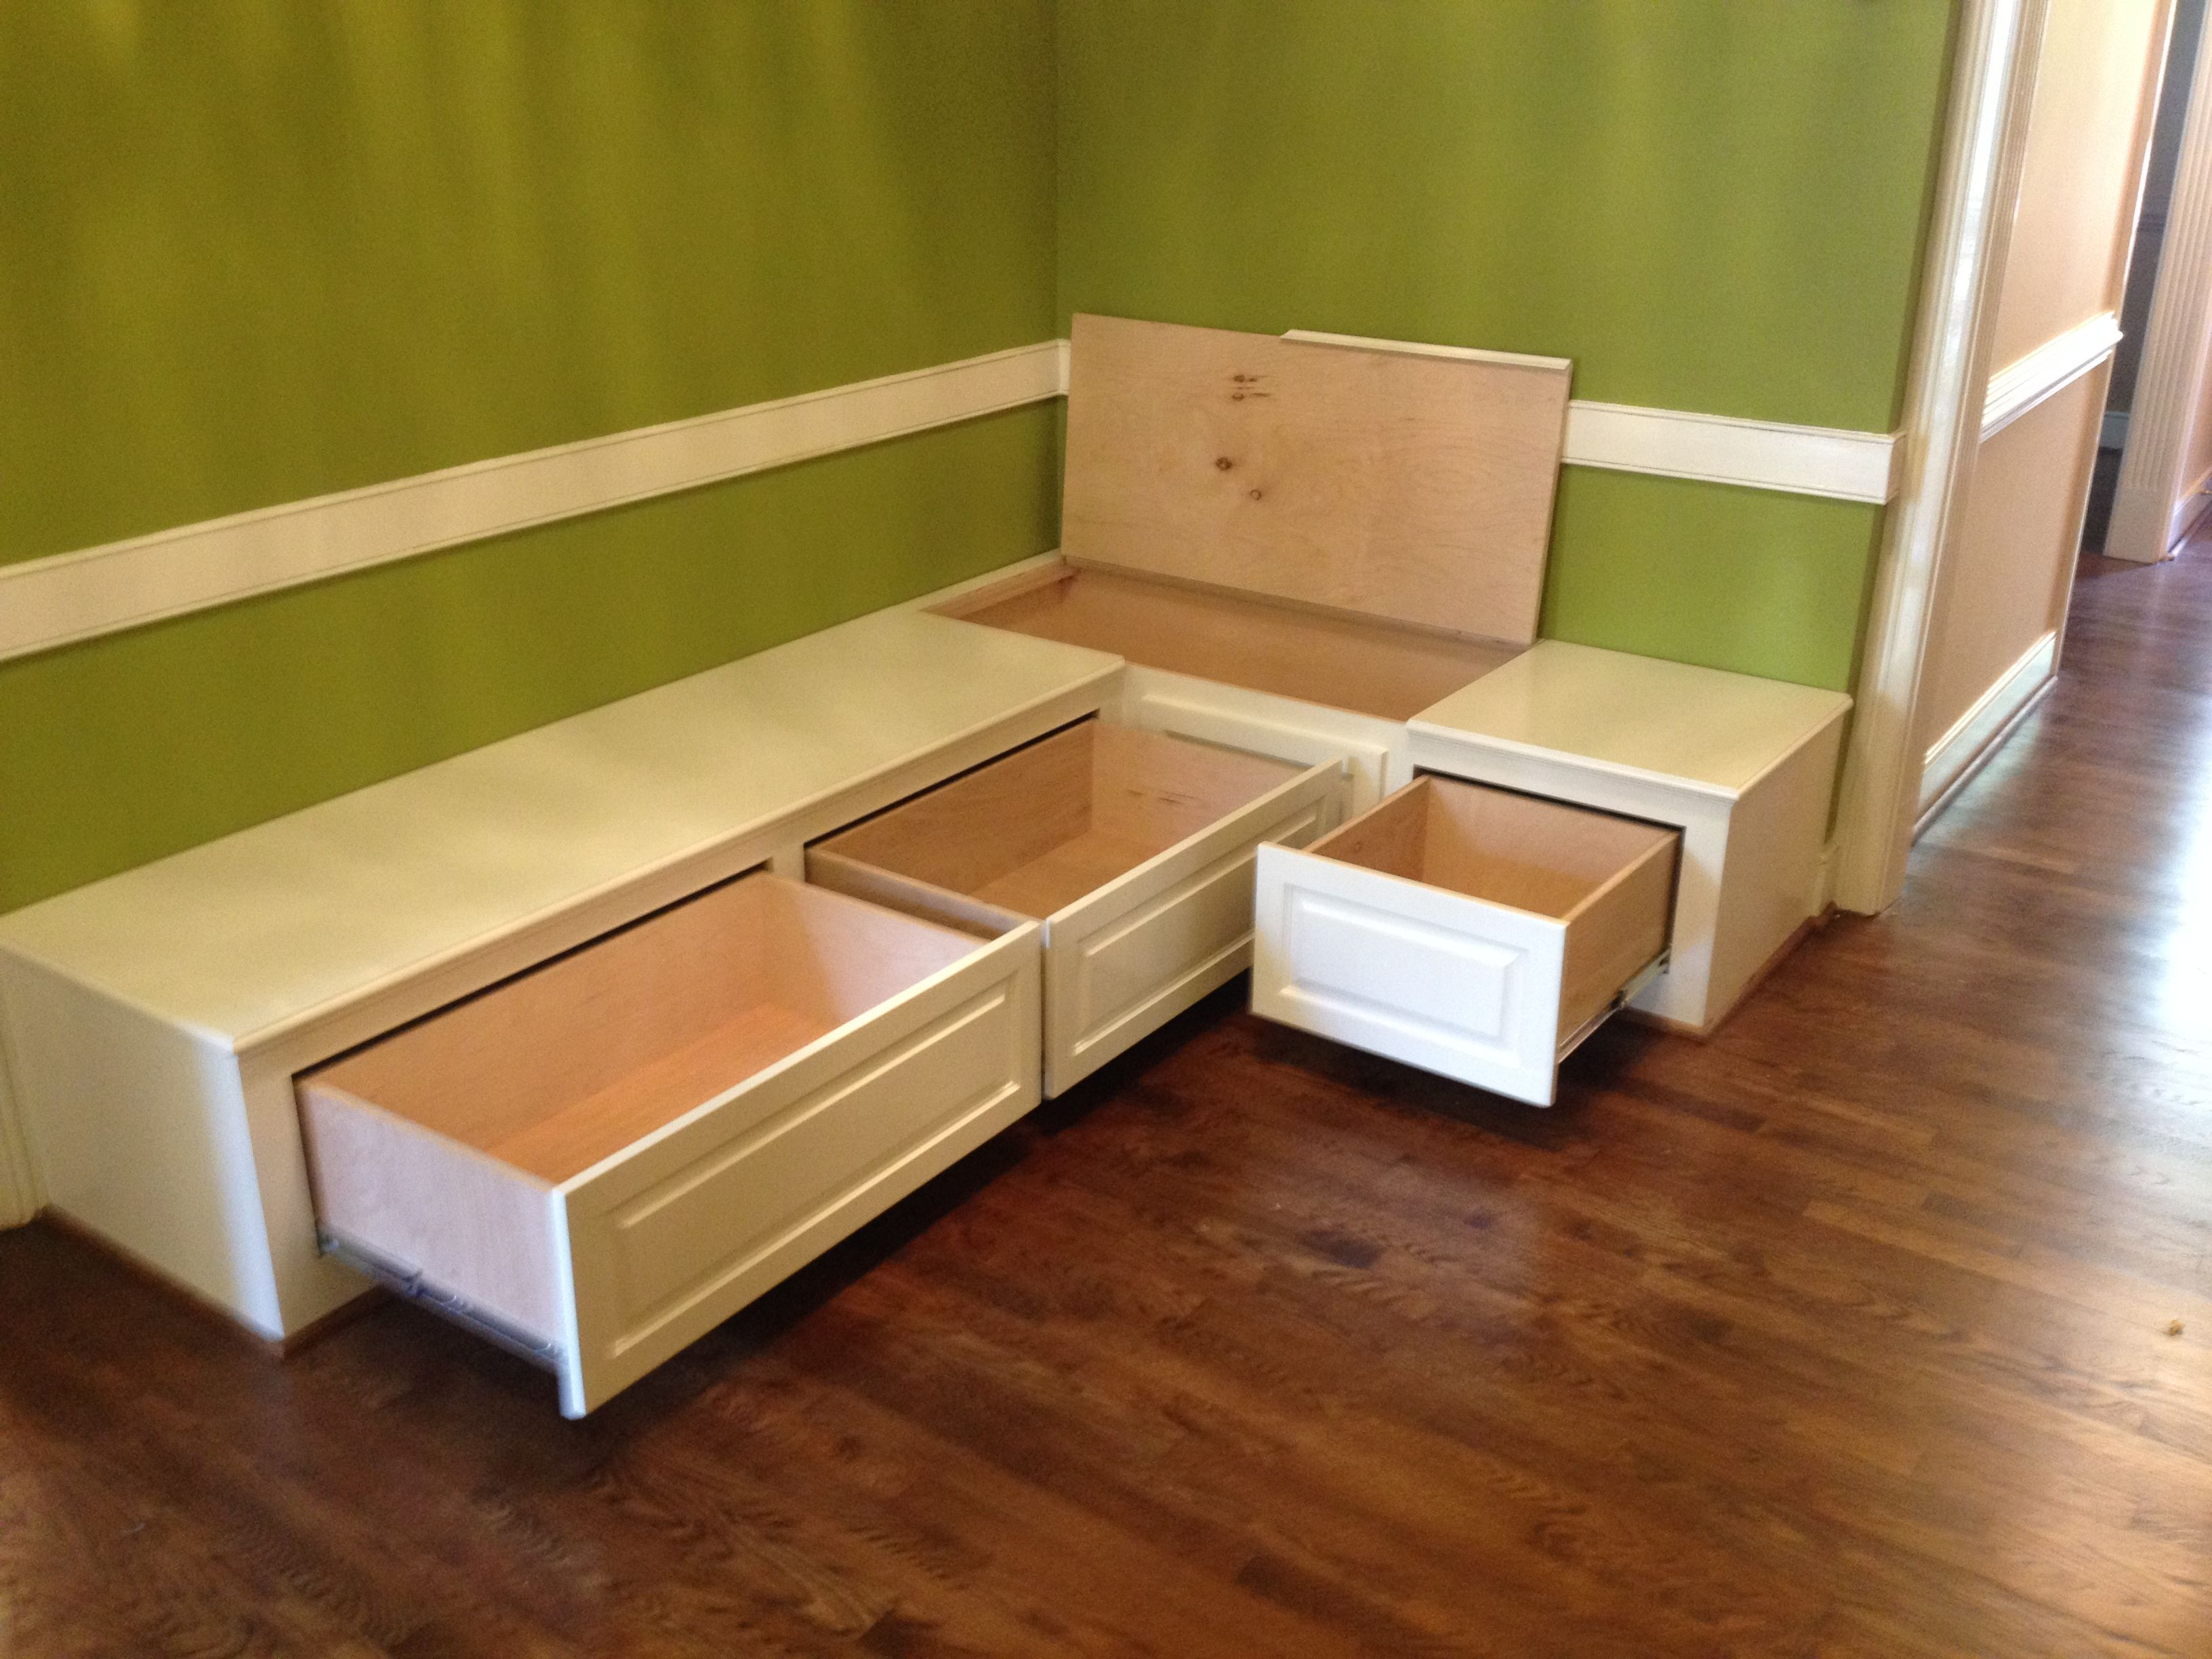 Lovely Storage Seating Bench For Your Dining Room Bench